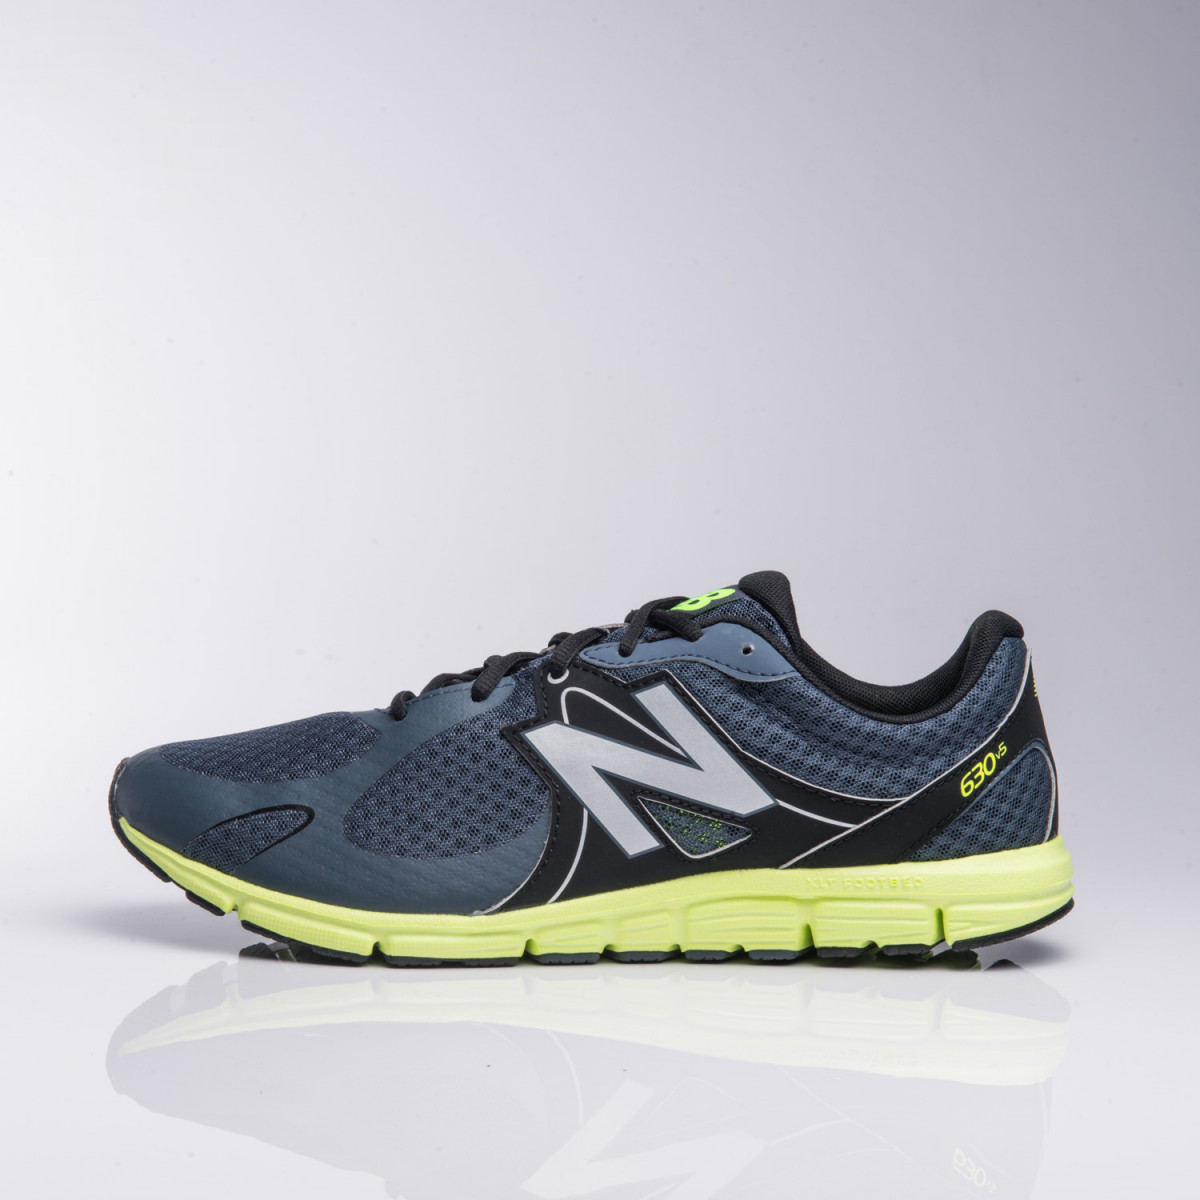 ZAPATILLAS NEW BALANCE M630LG5